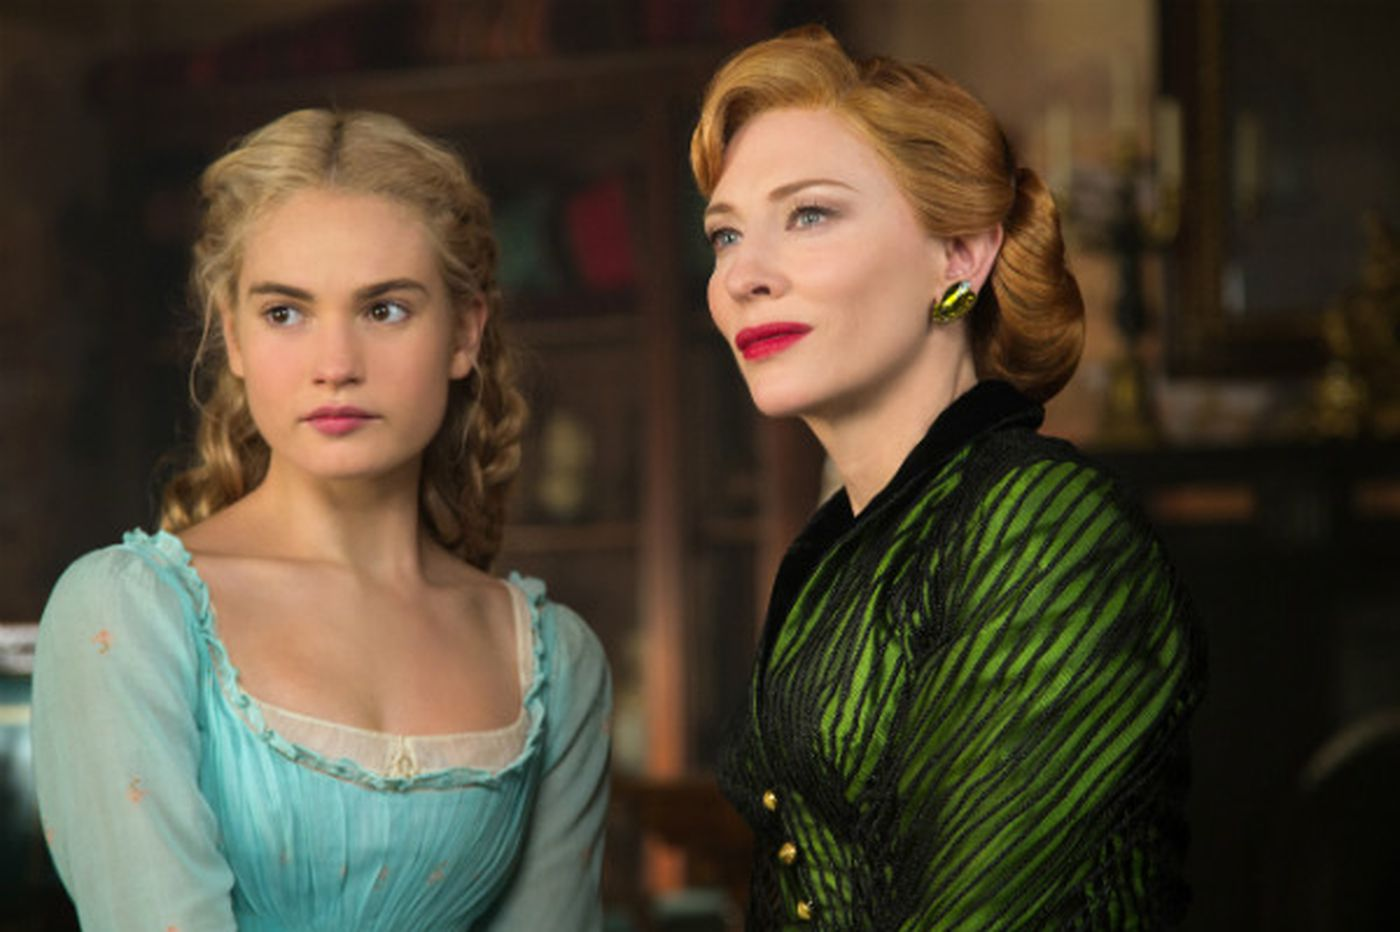 Downton Abbey's Lady Rose is magical as she slips into 'Cinderella' slippers